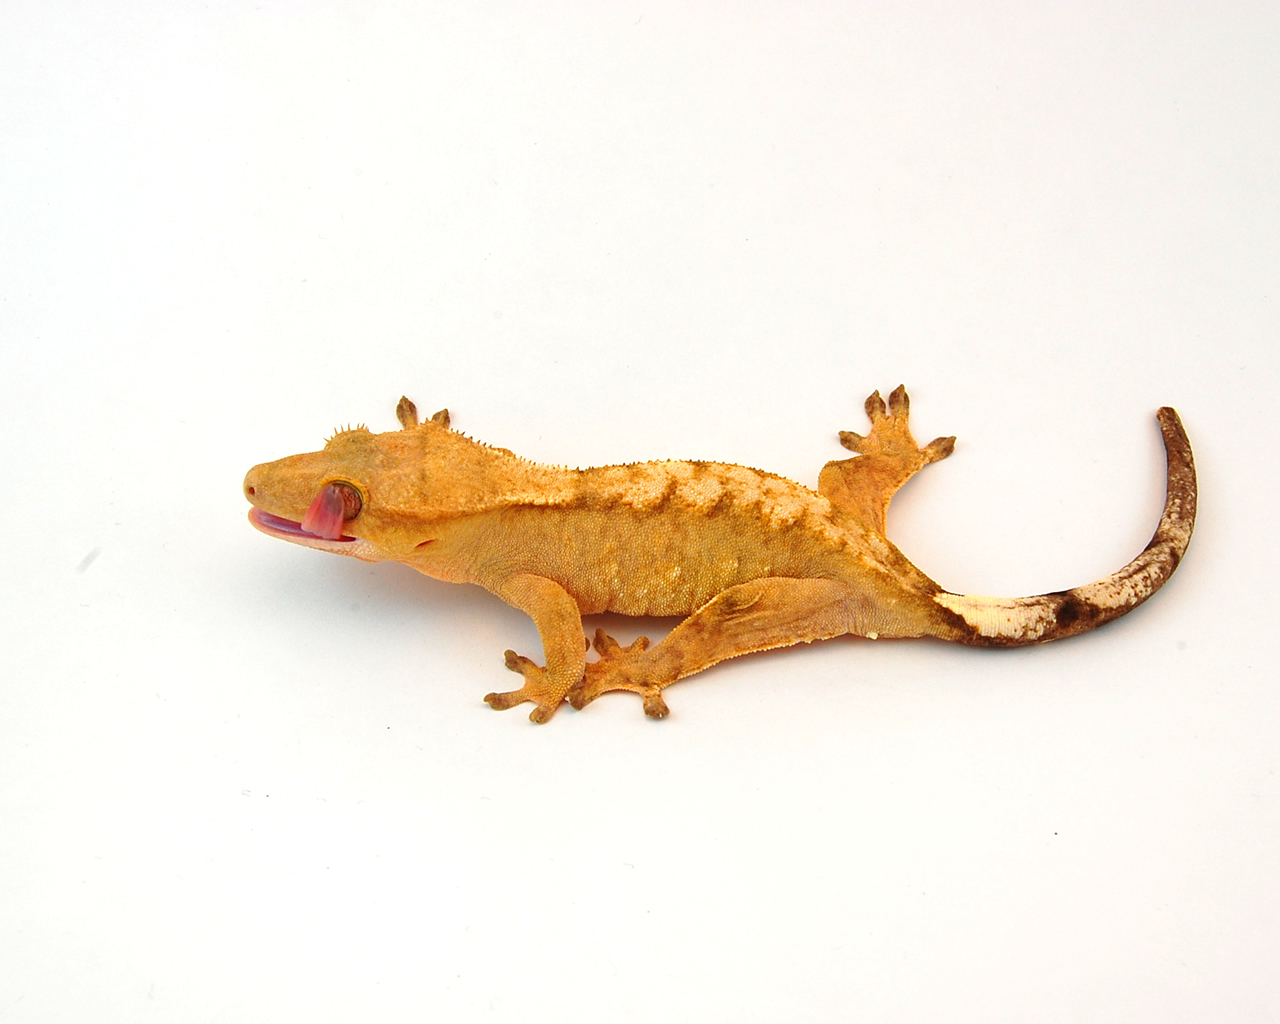 Crested gecko care page 72 scientists from a healthy we can say we found nvjuhfo Images